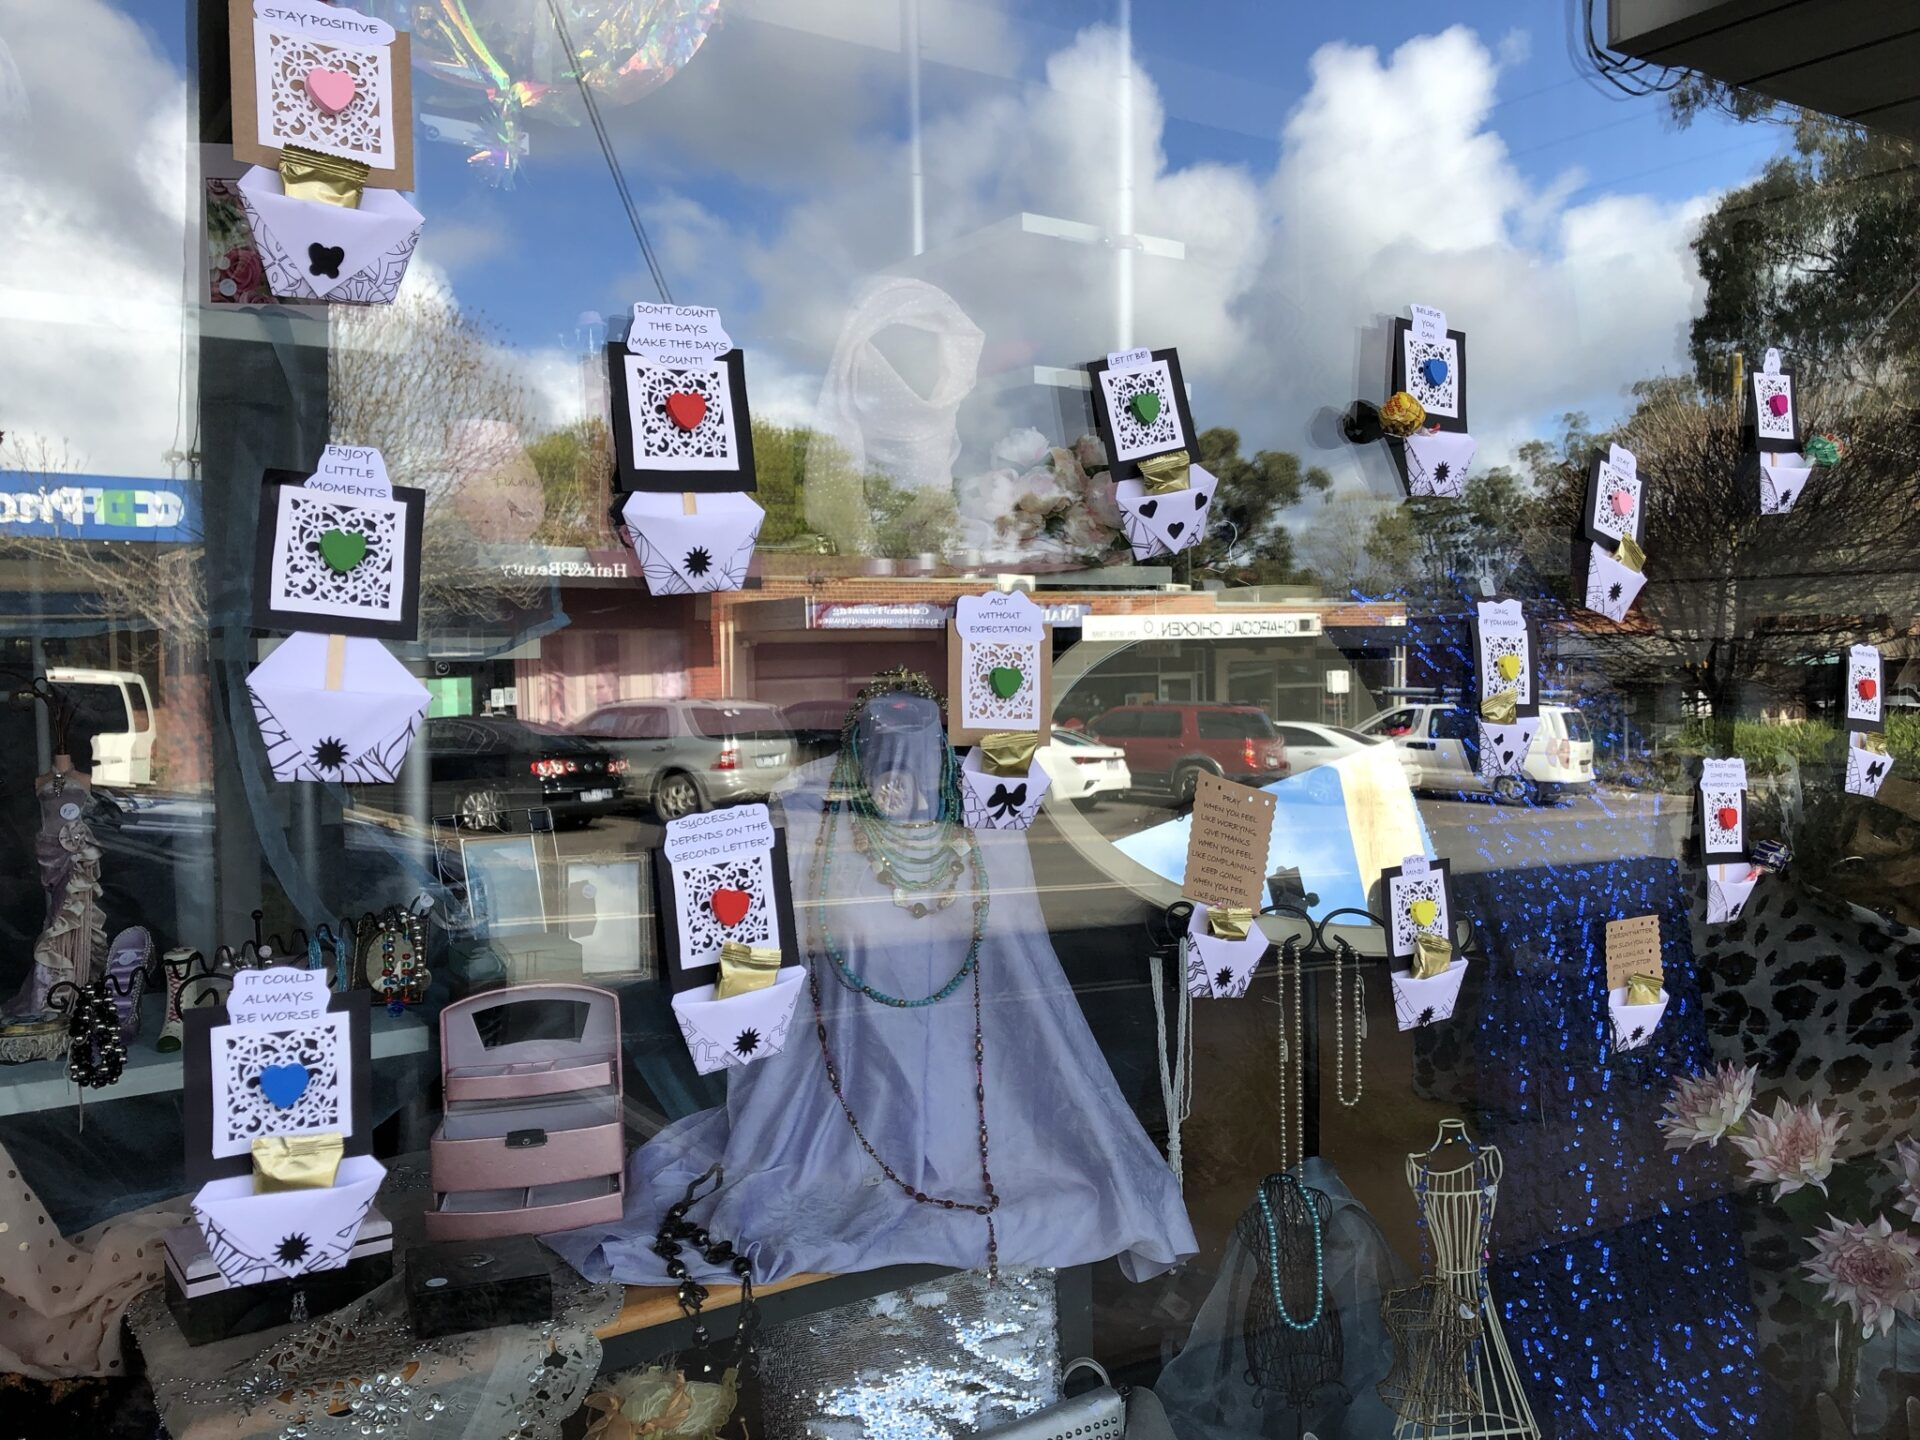 hand made pockets hanging from a shop window with sayings on them and free lollipops in them